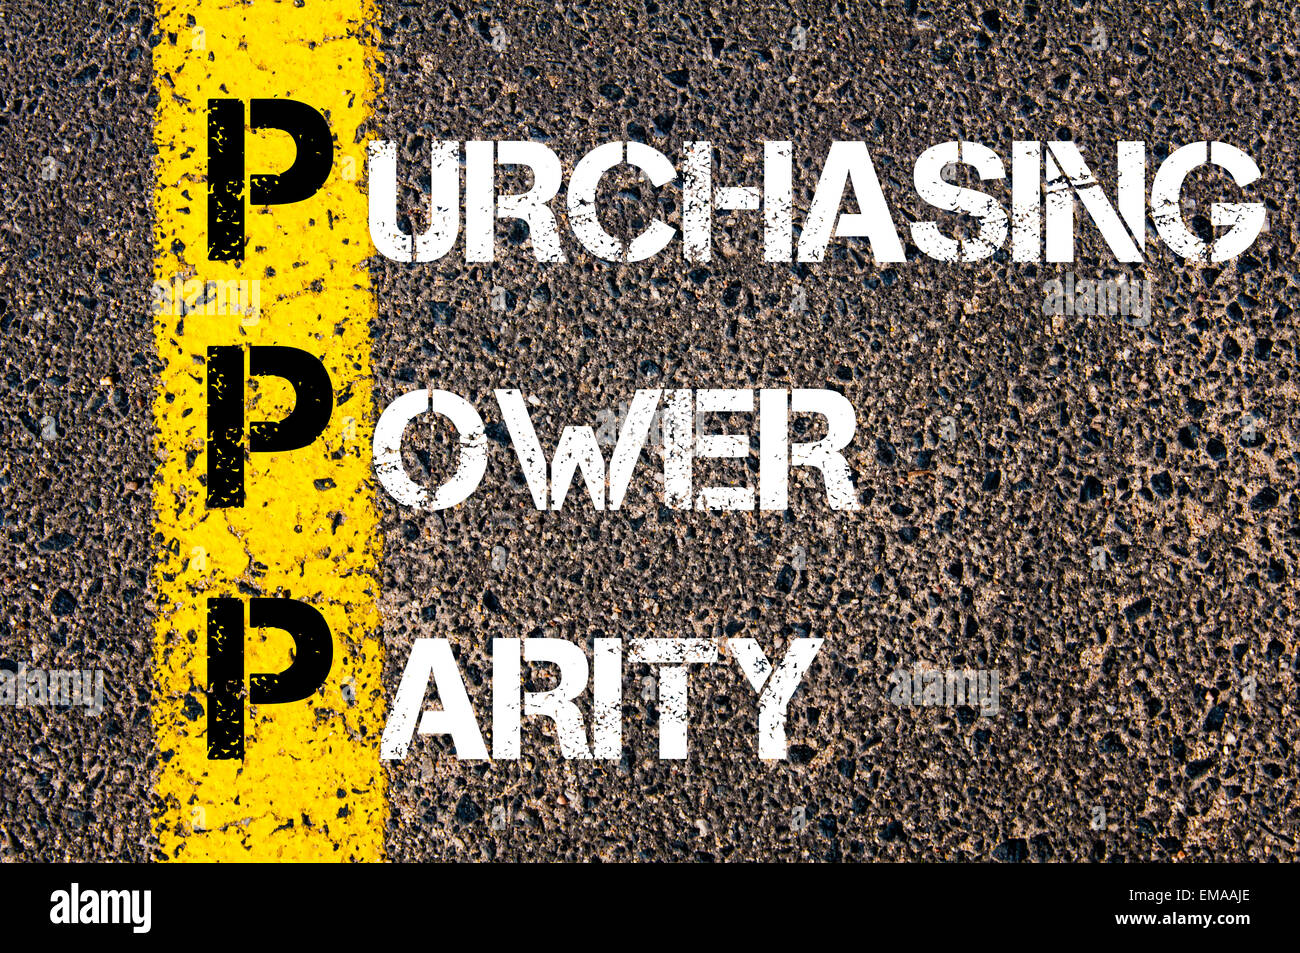 Business Acronym PPP - Purchasing power parity. Yellow paint line on the road against asphalt background. Conceptual - Stock Image